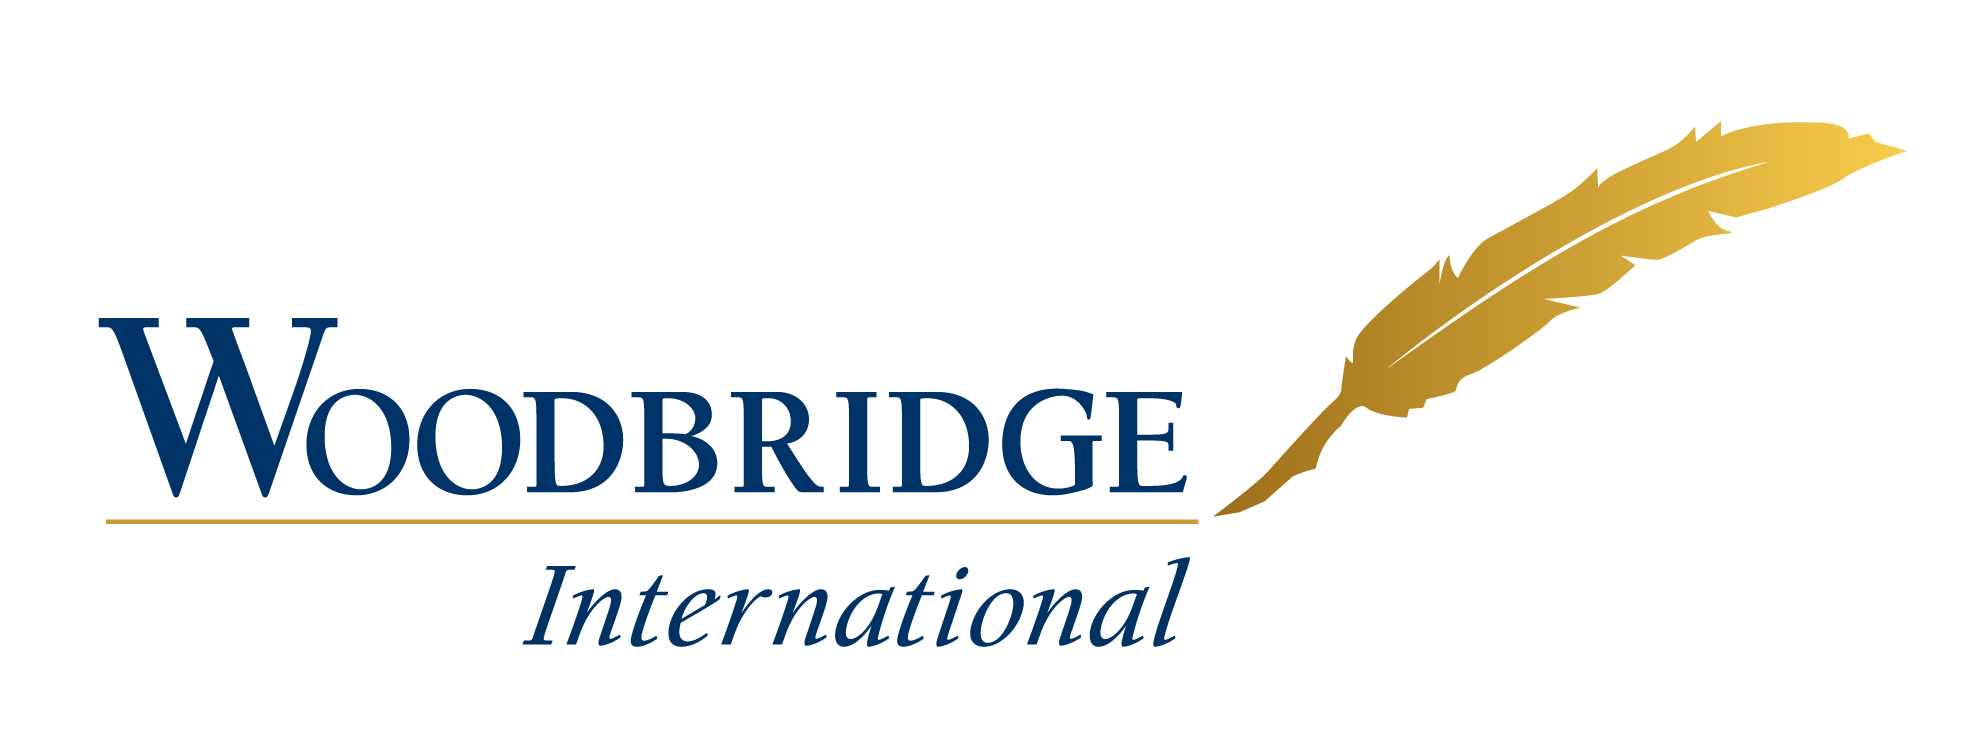 Woodbridge International logo